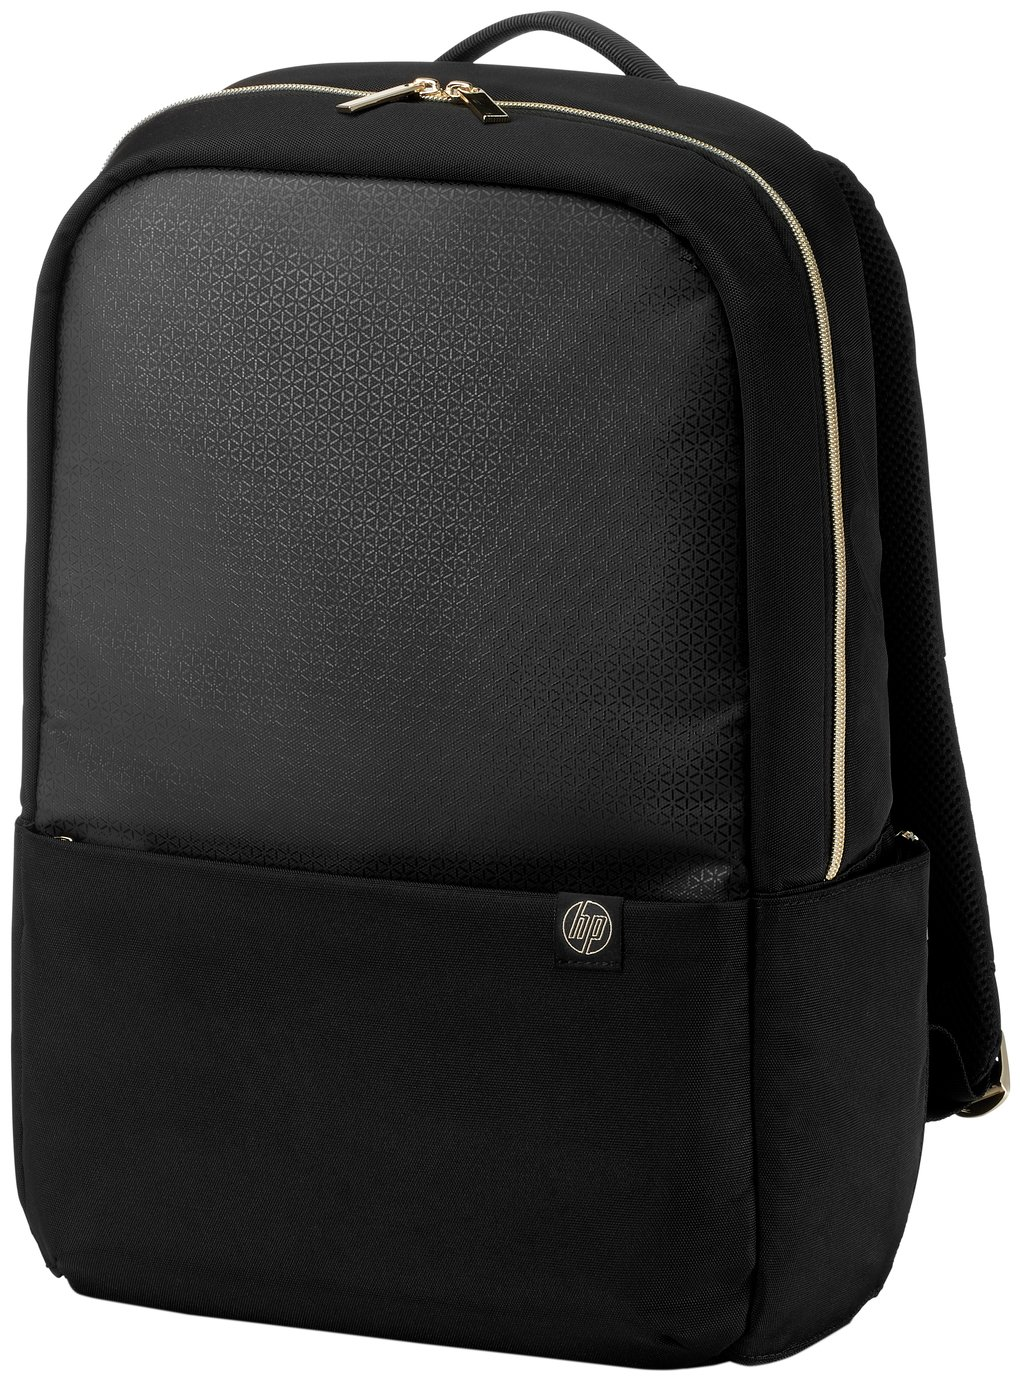 HP Duotone 15.6 Inch Laptop Backpack - Gold